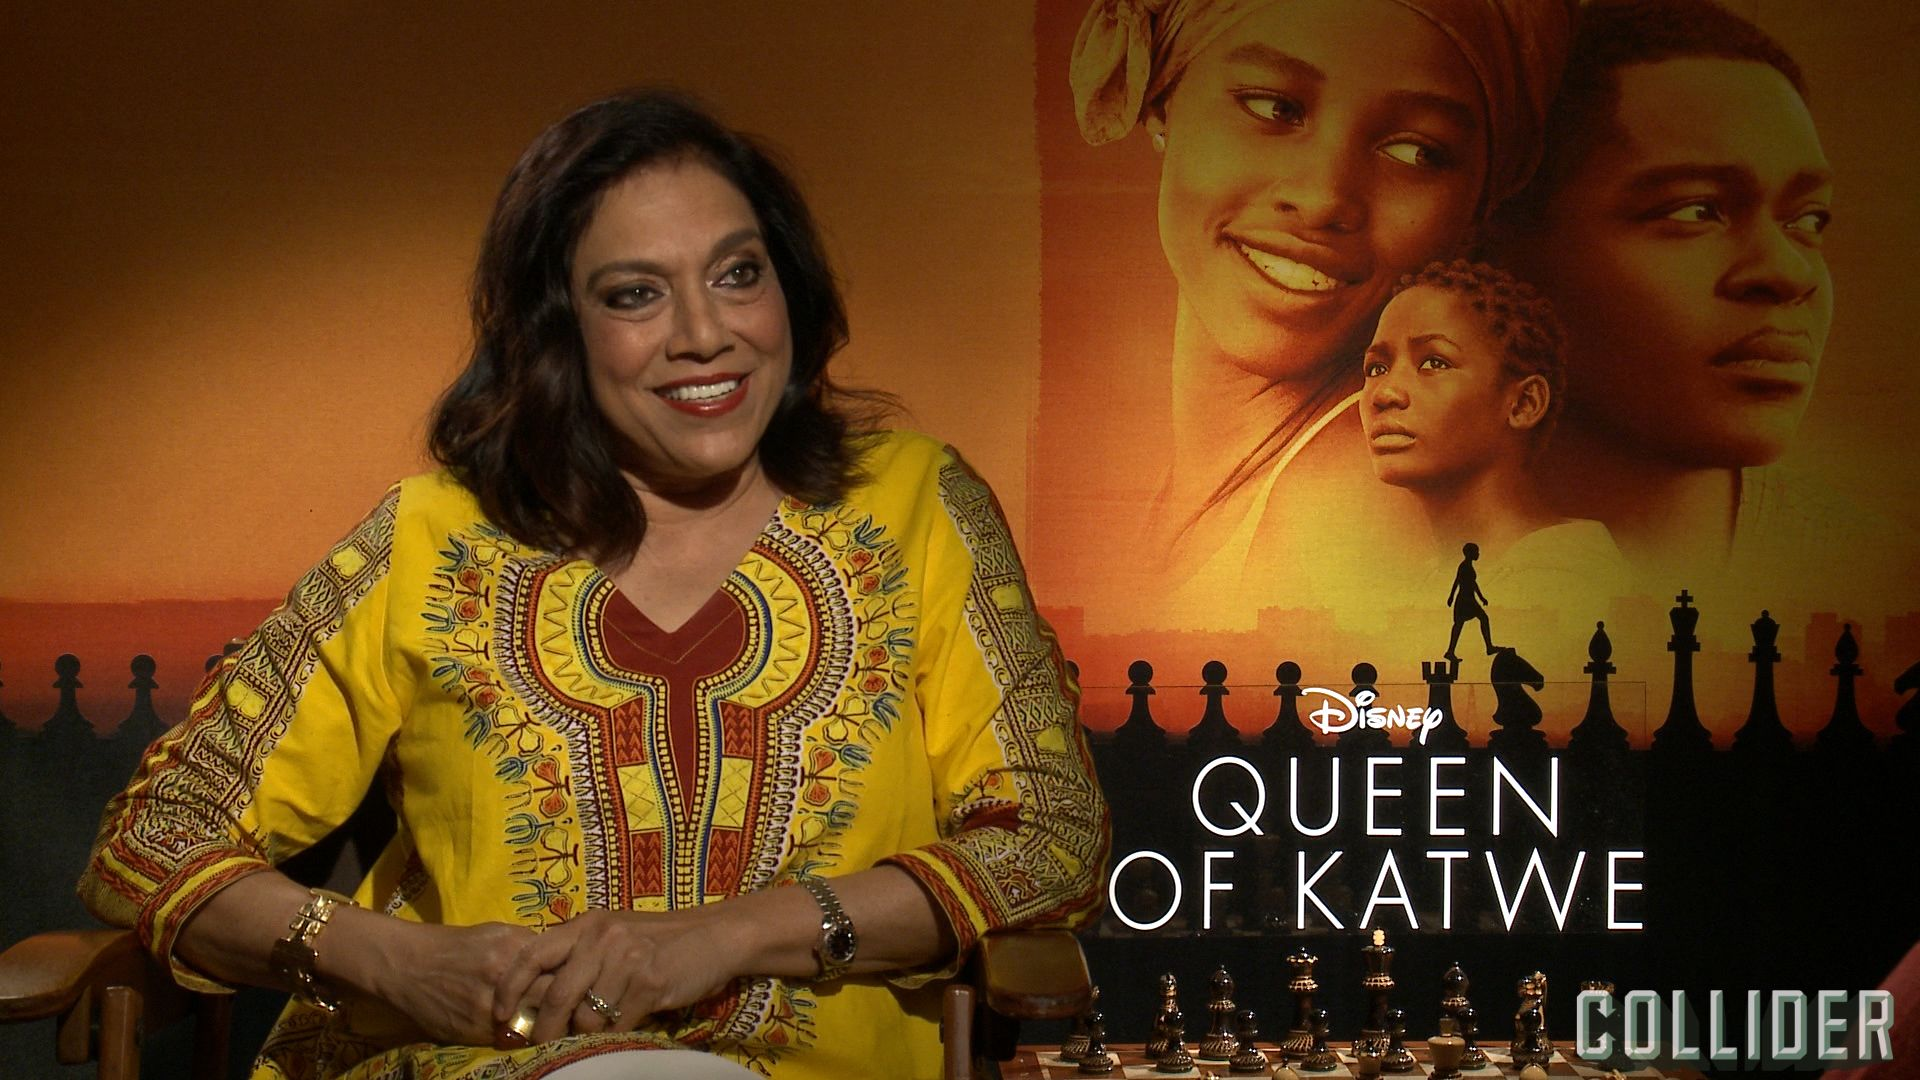 Mira Nair On The Incredible True Story Of Queen Katwe